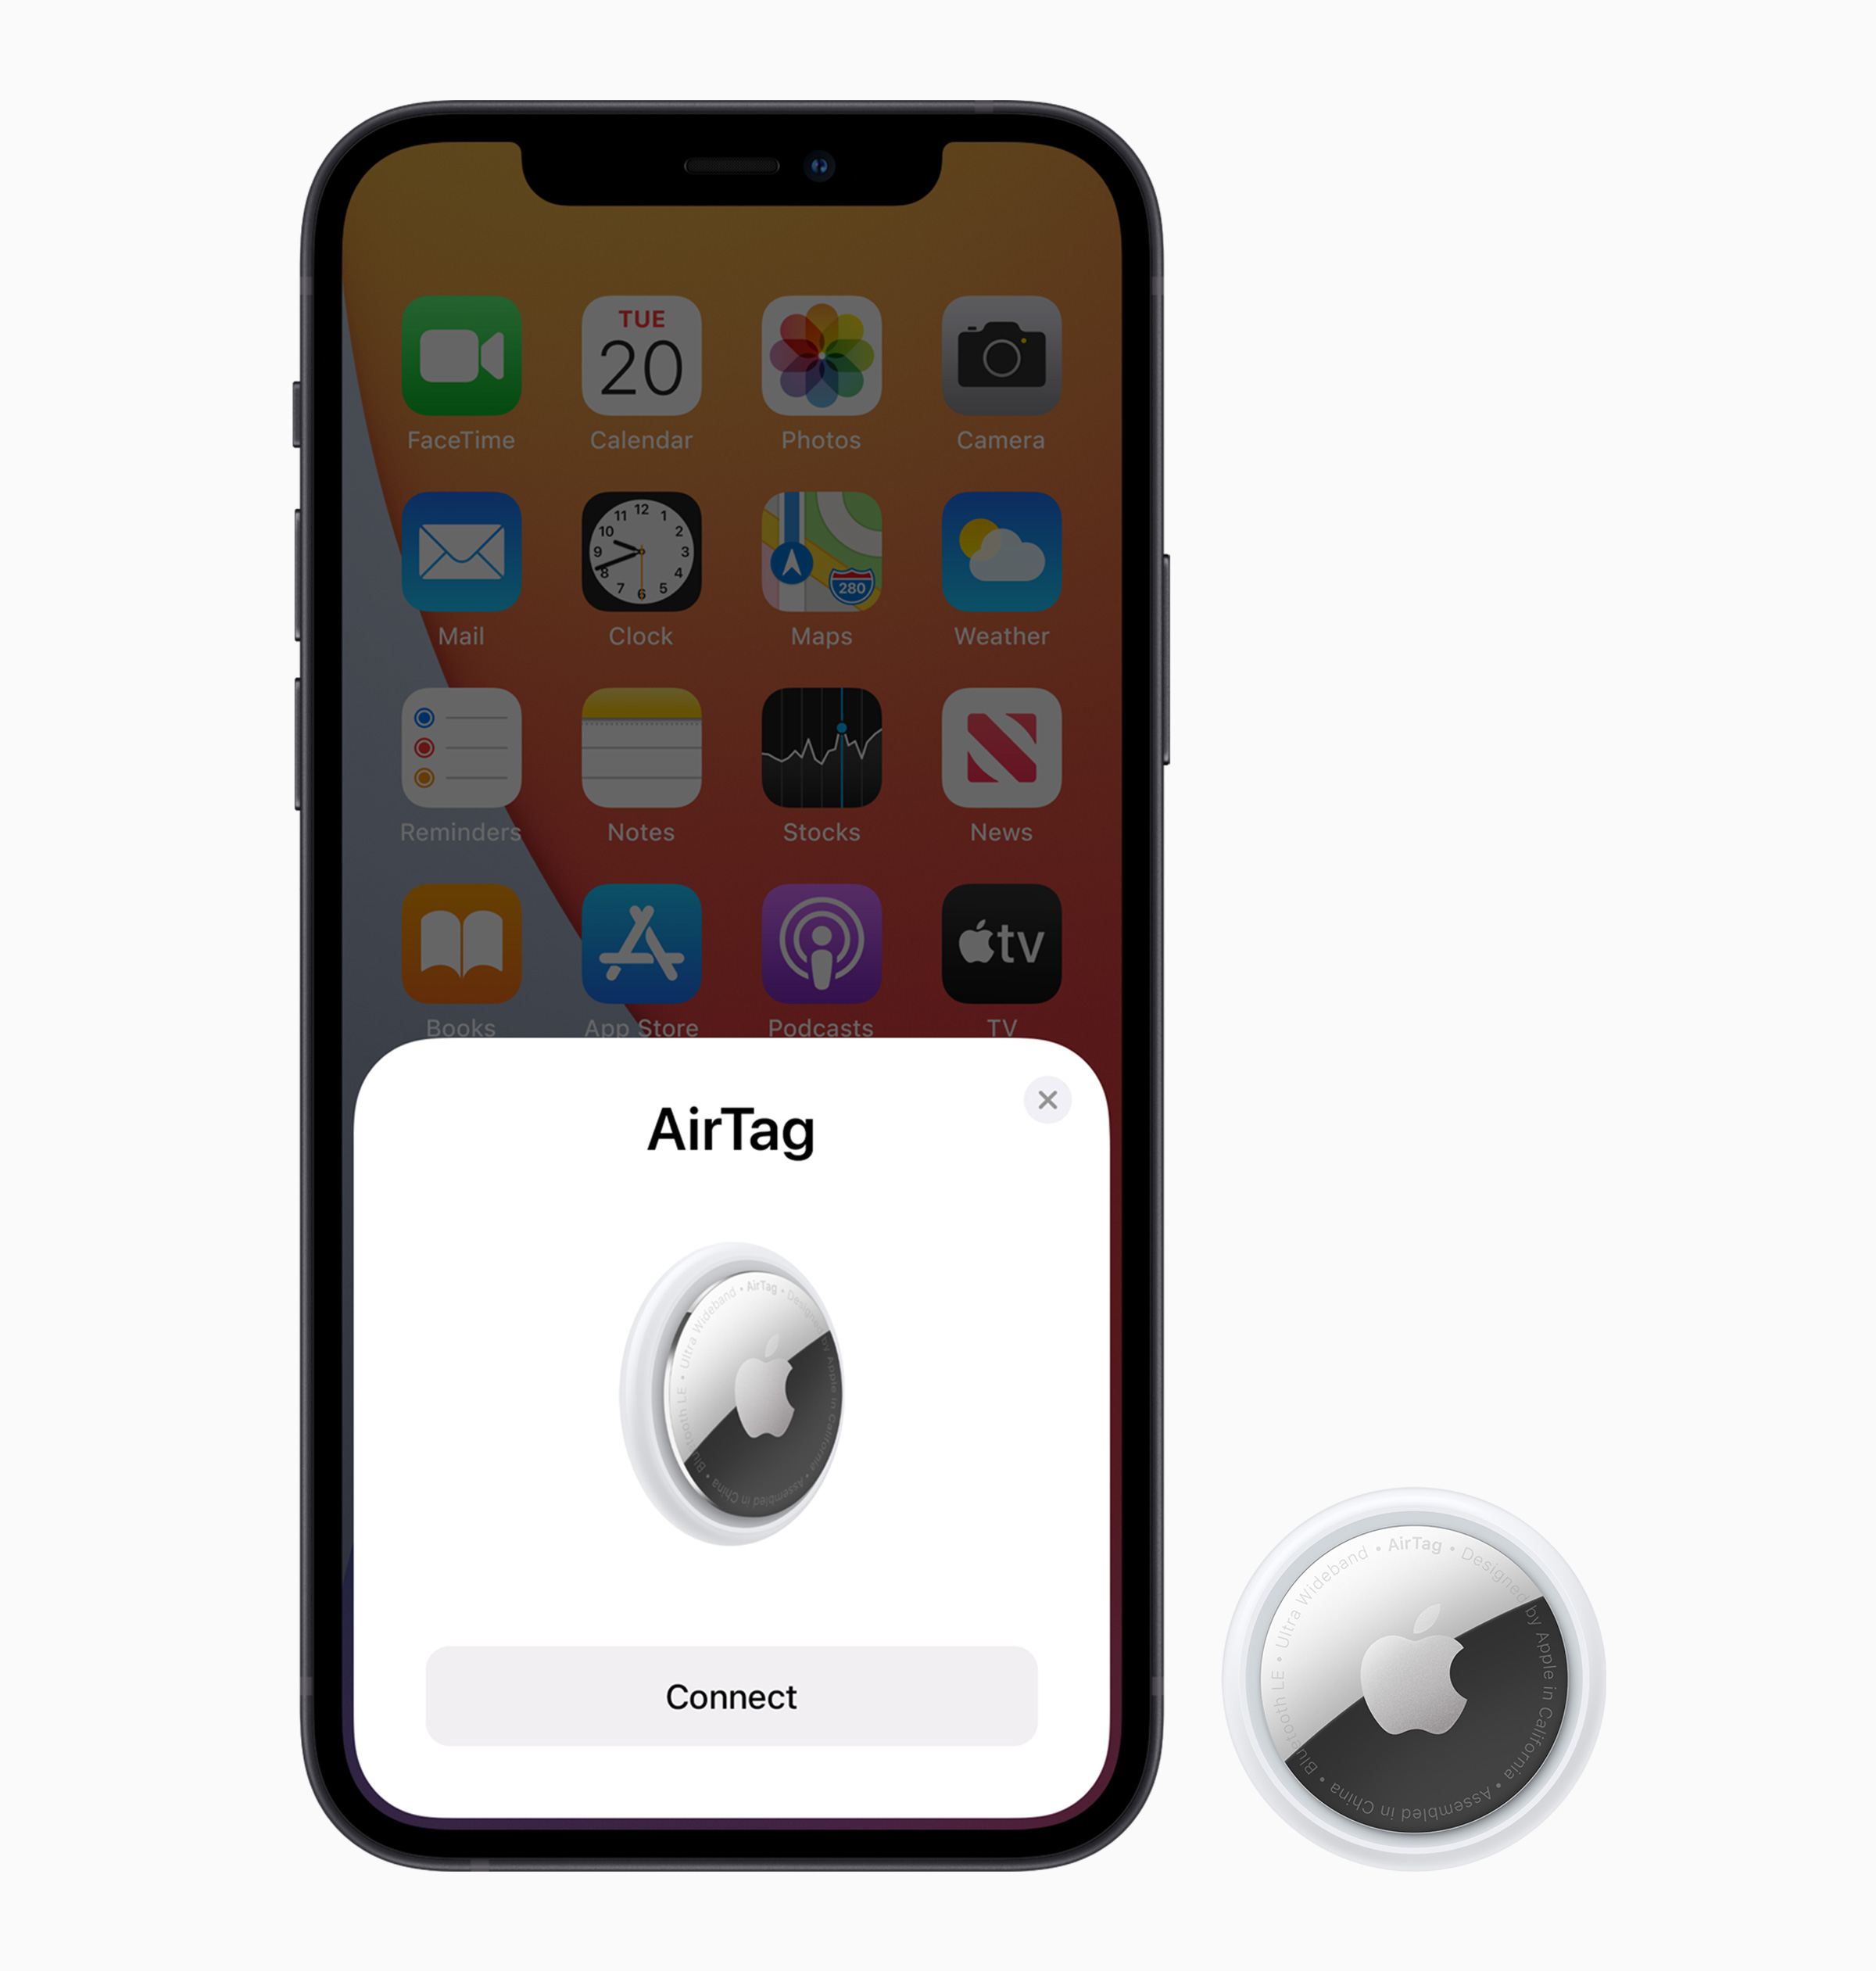 Apple_airtag-pairing-screen_042021.jpg